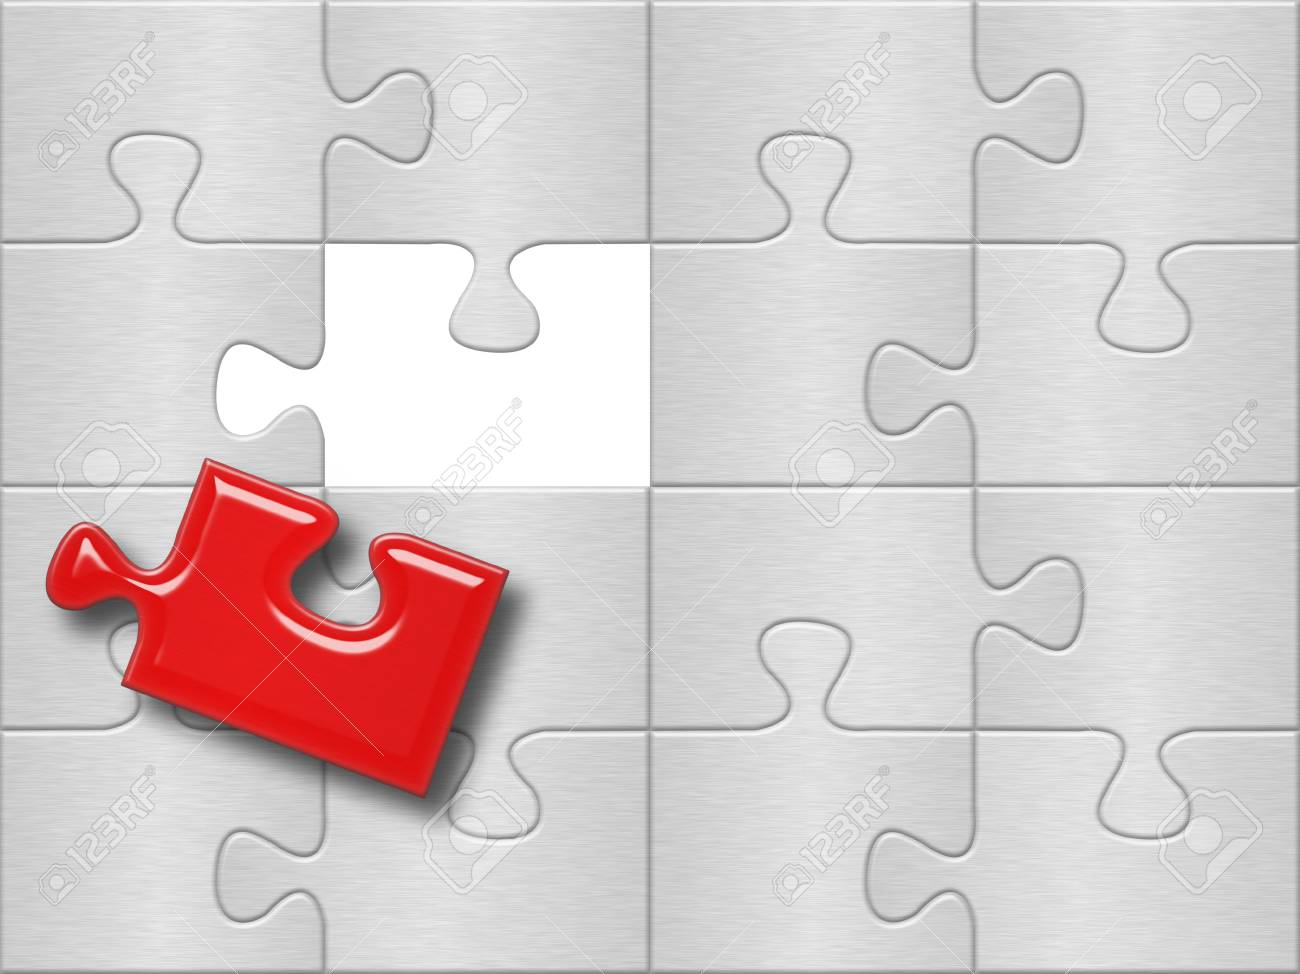 gray puzzle plane surface with one missing red piese Stock Photo - 4669125